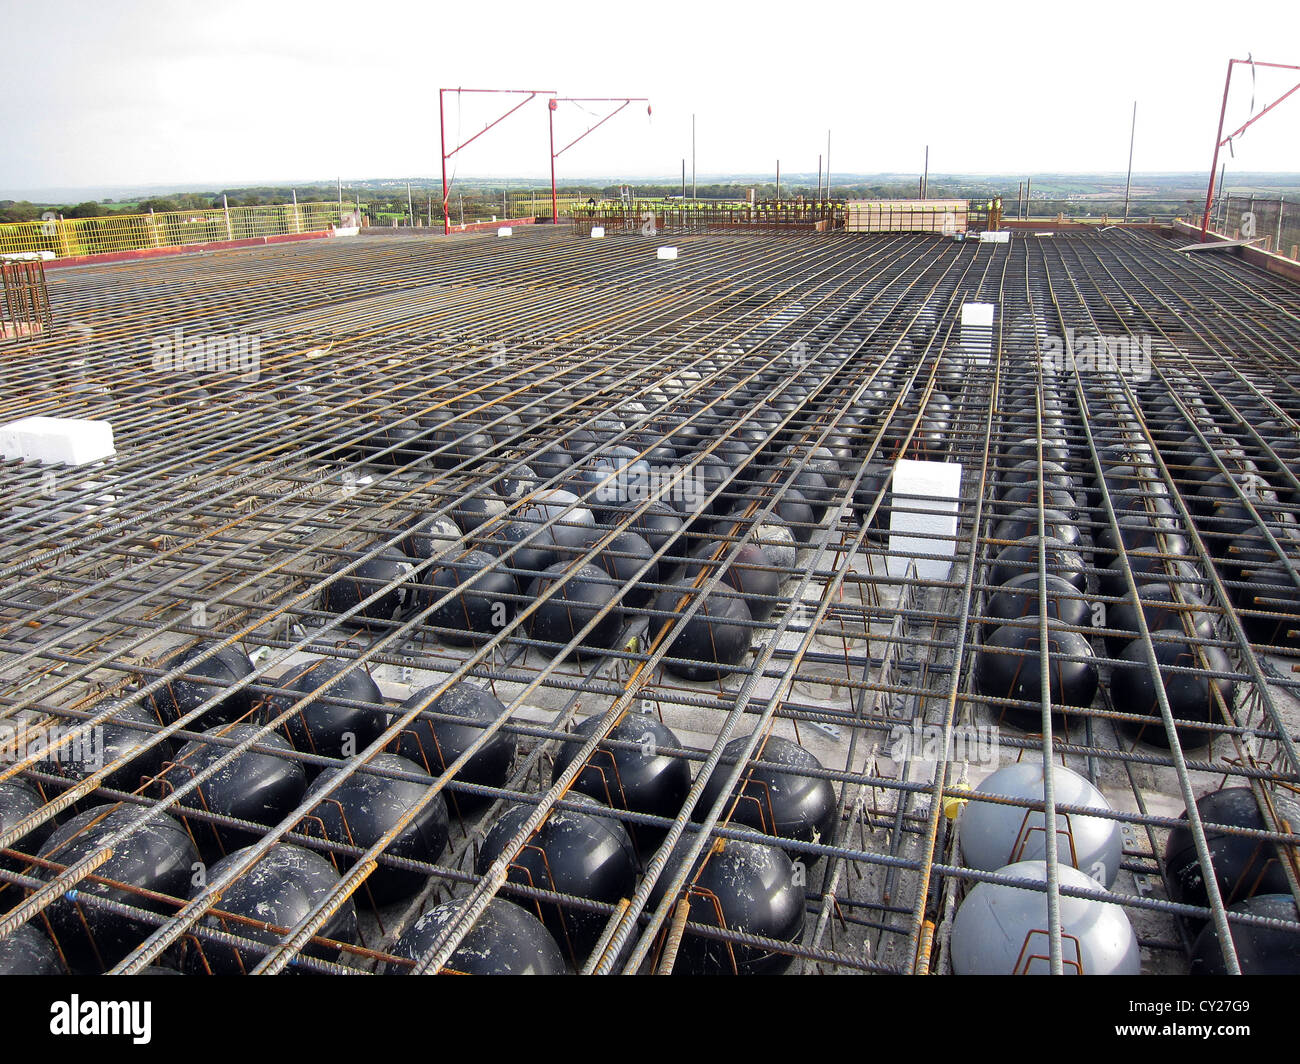 Construction Of A Concrete Slab Using Light Weight Balls   Stock Image